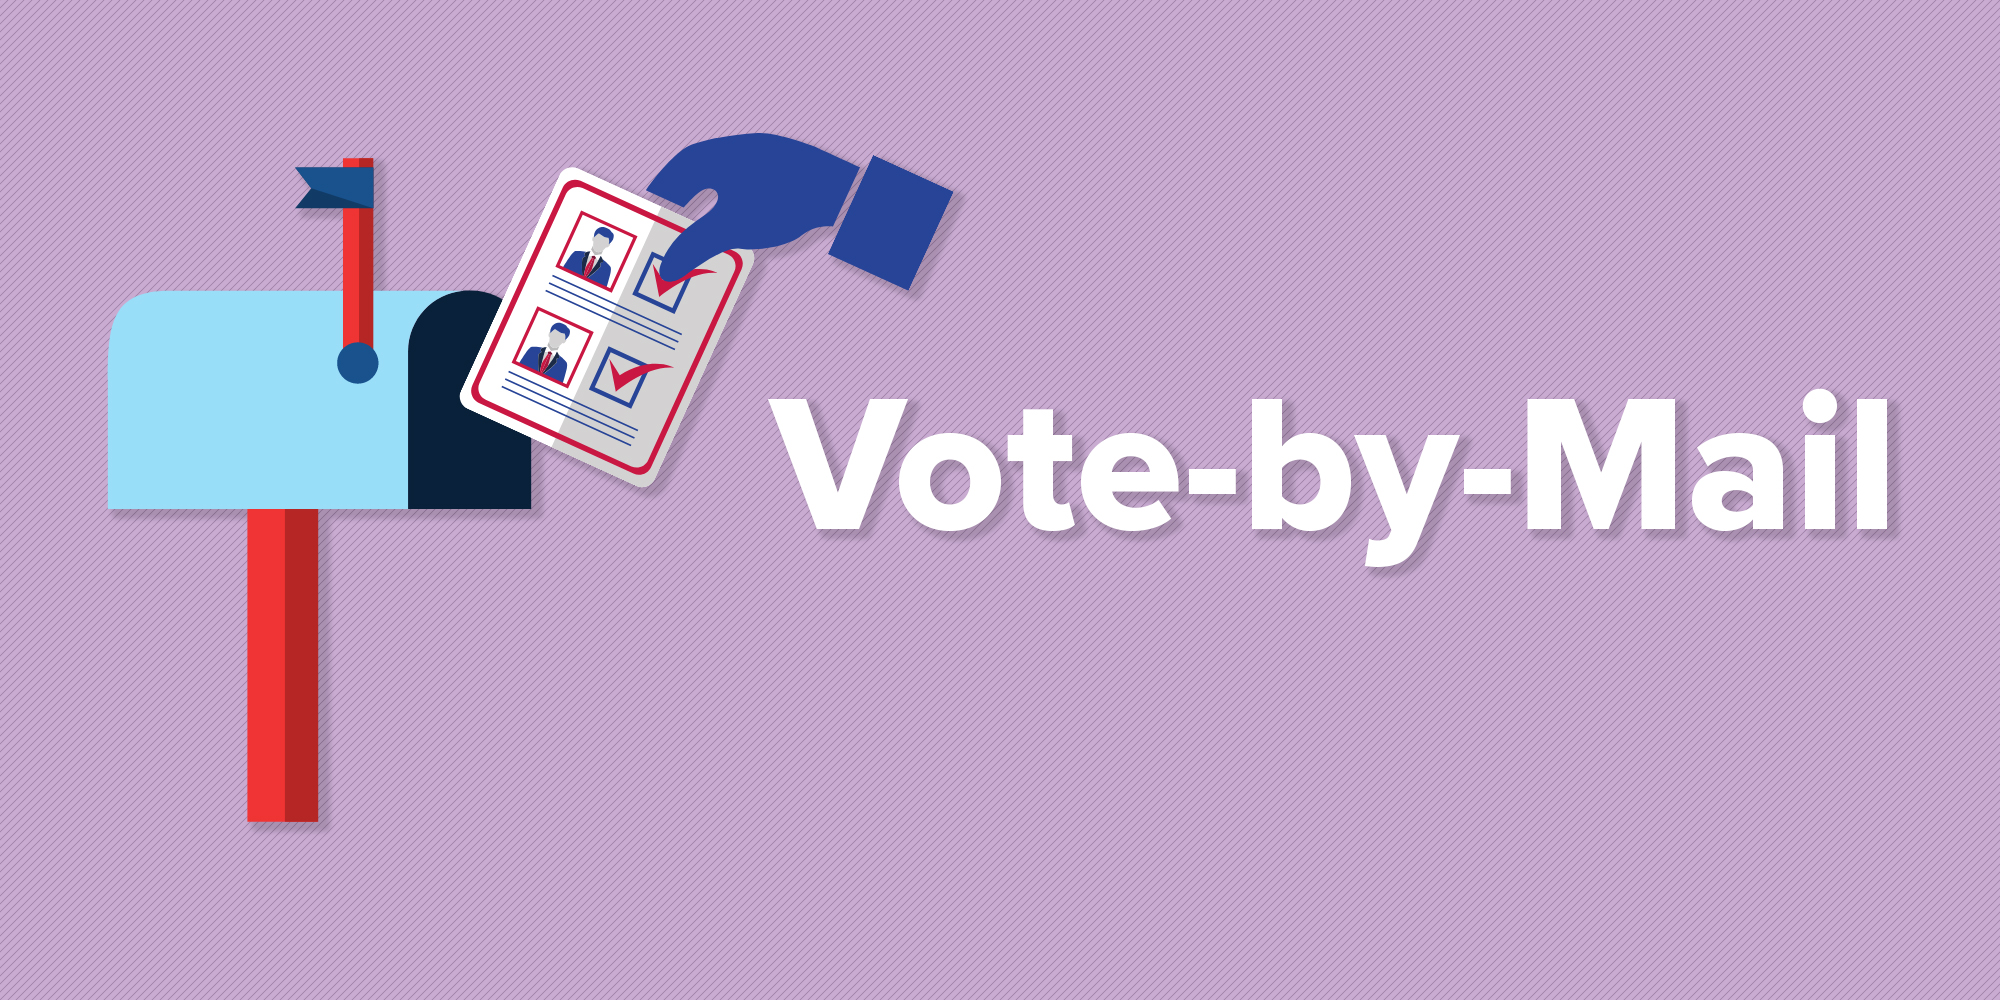 Vote-by-Mail and Social Distancing Can Work in Harmony